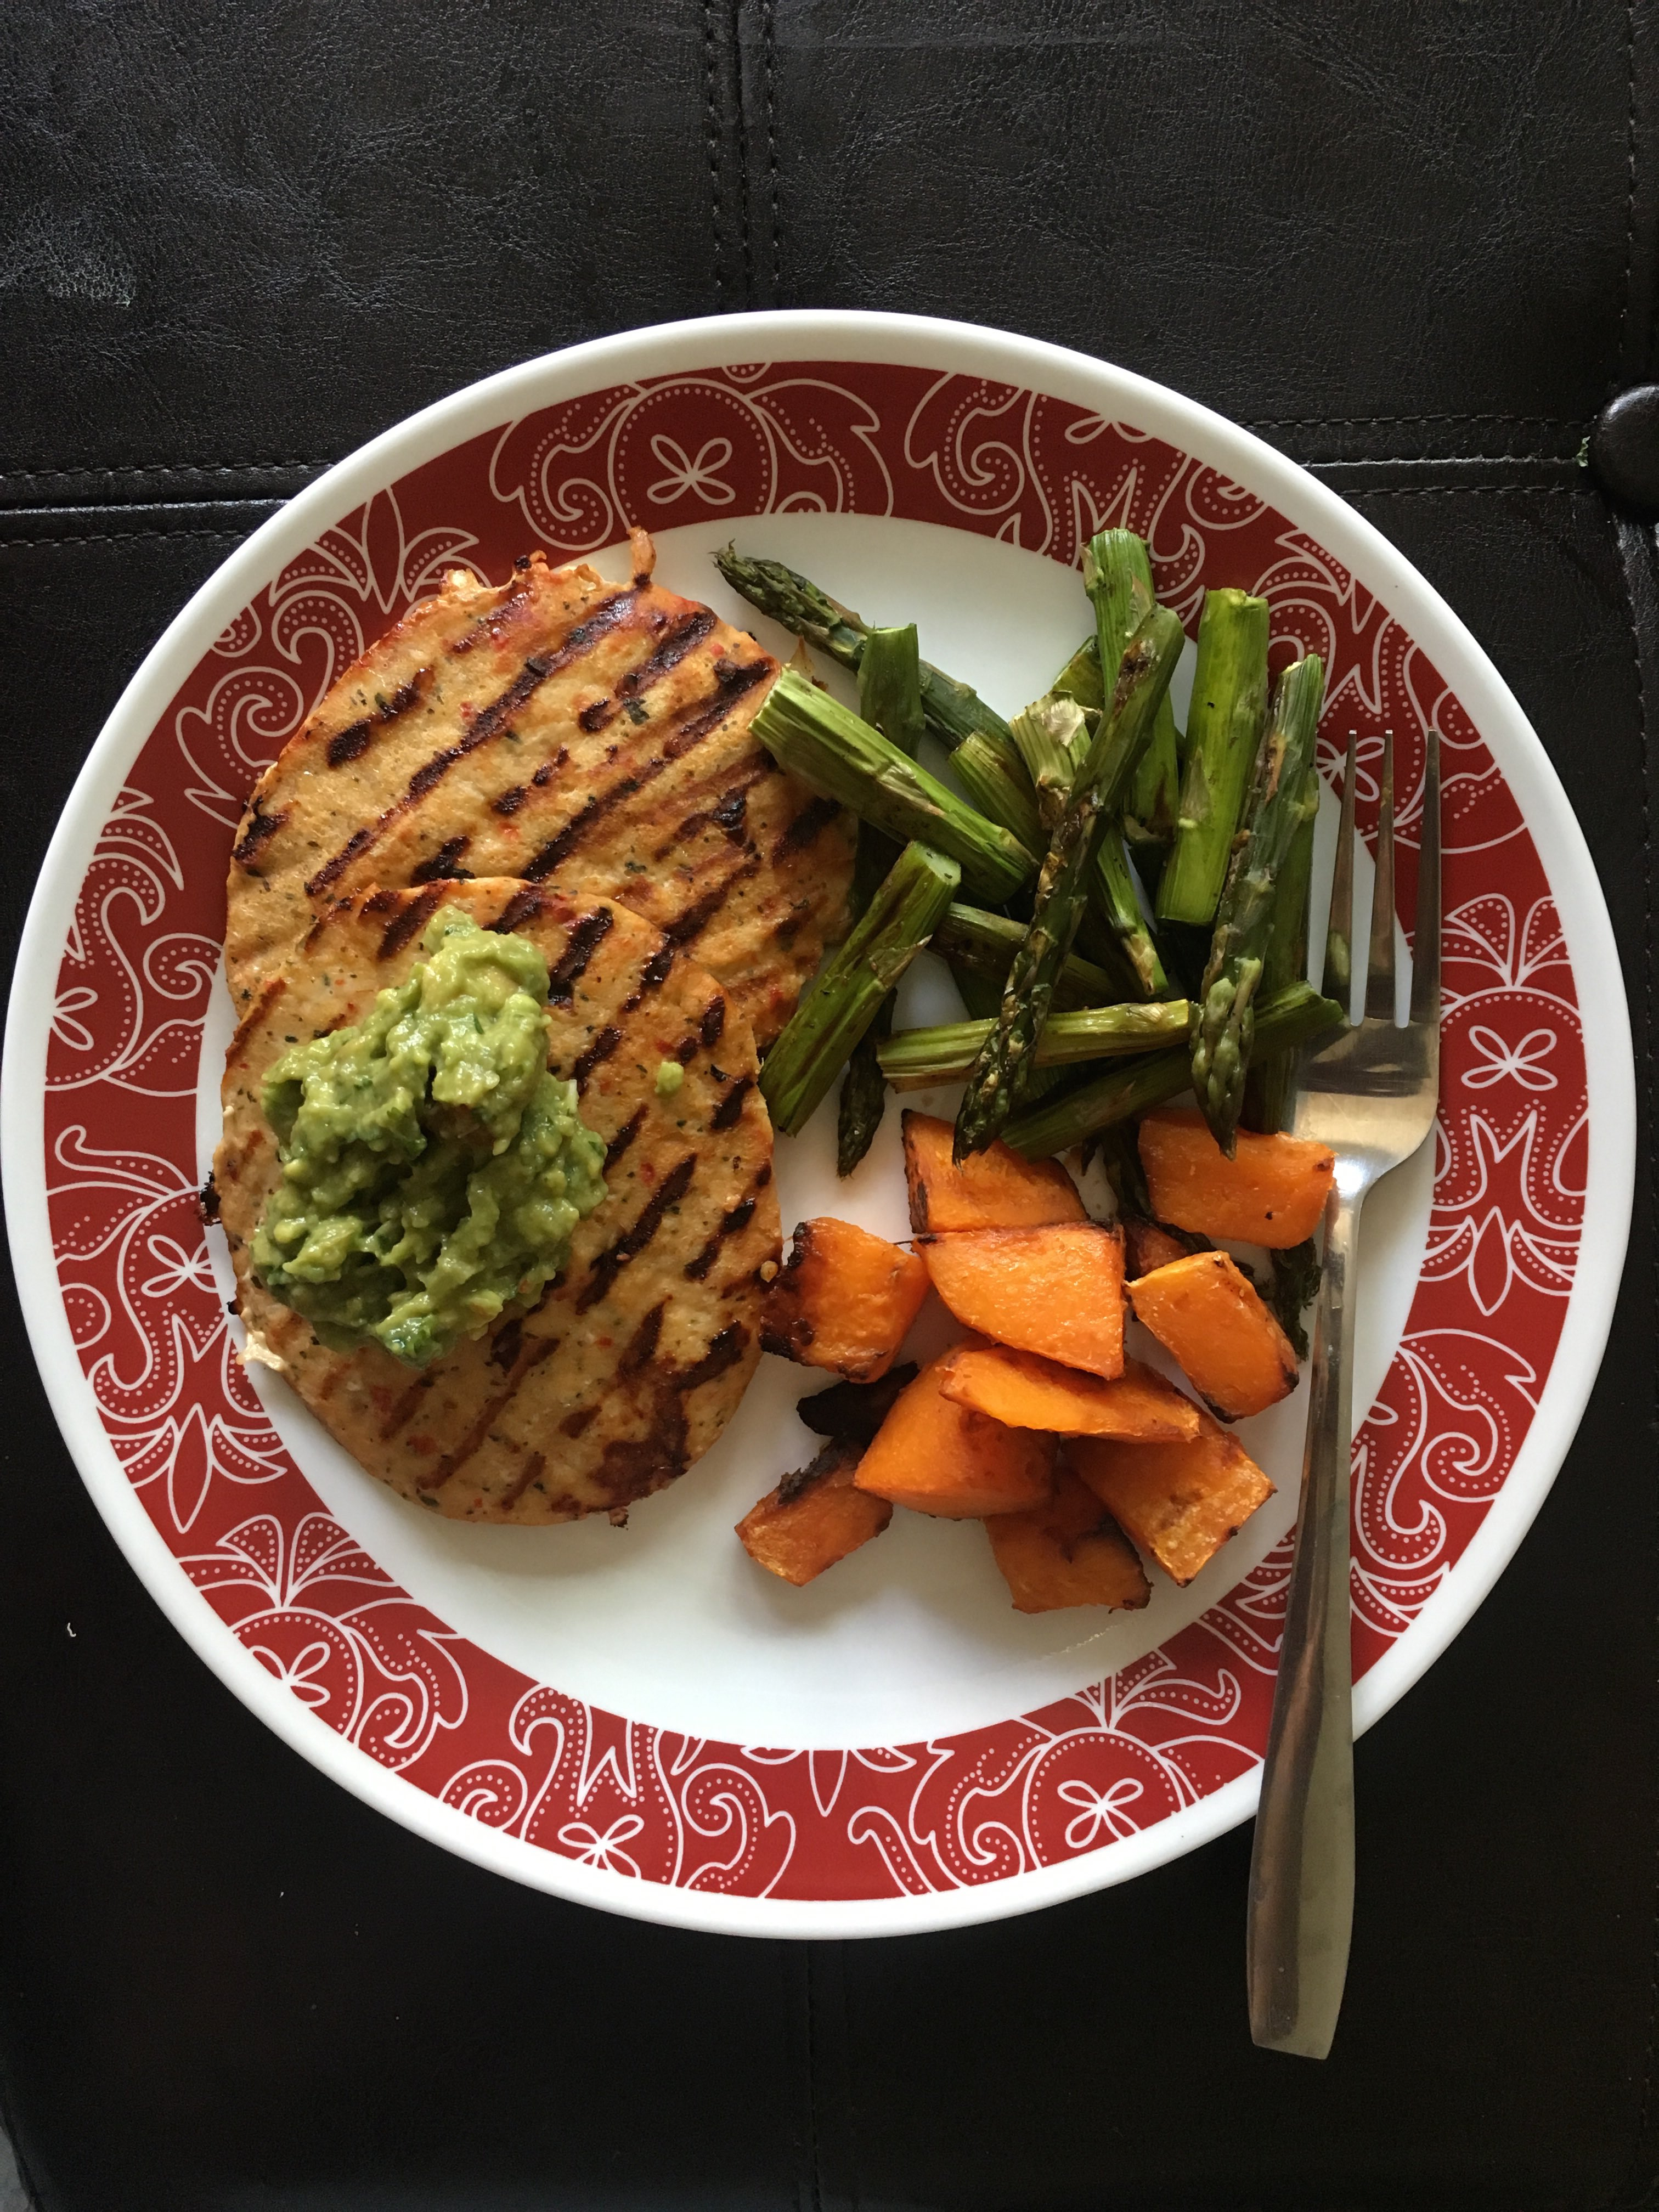 Whole 30 Approved Meal with Trader Joes Chili Lime Chicken Burgers